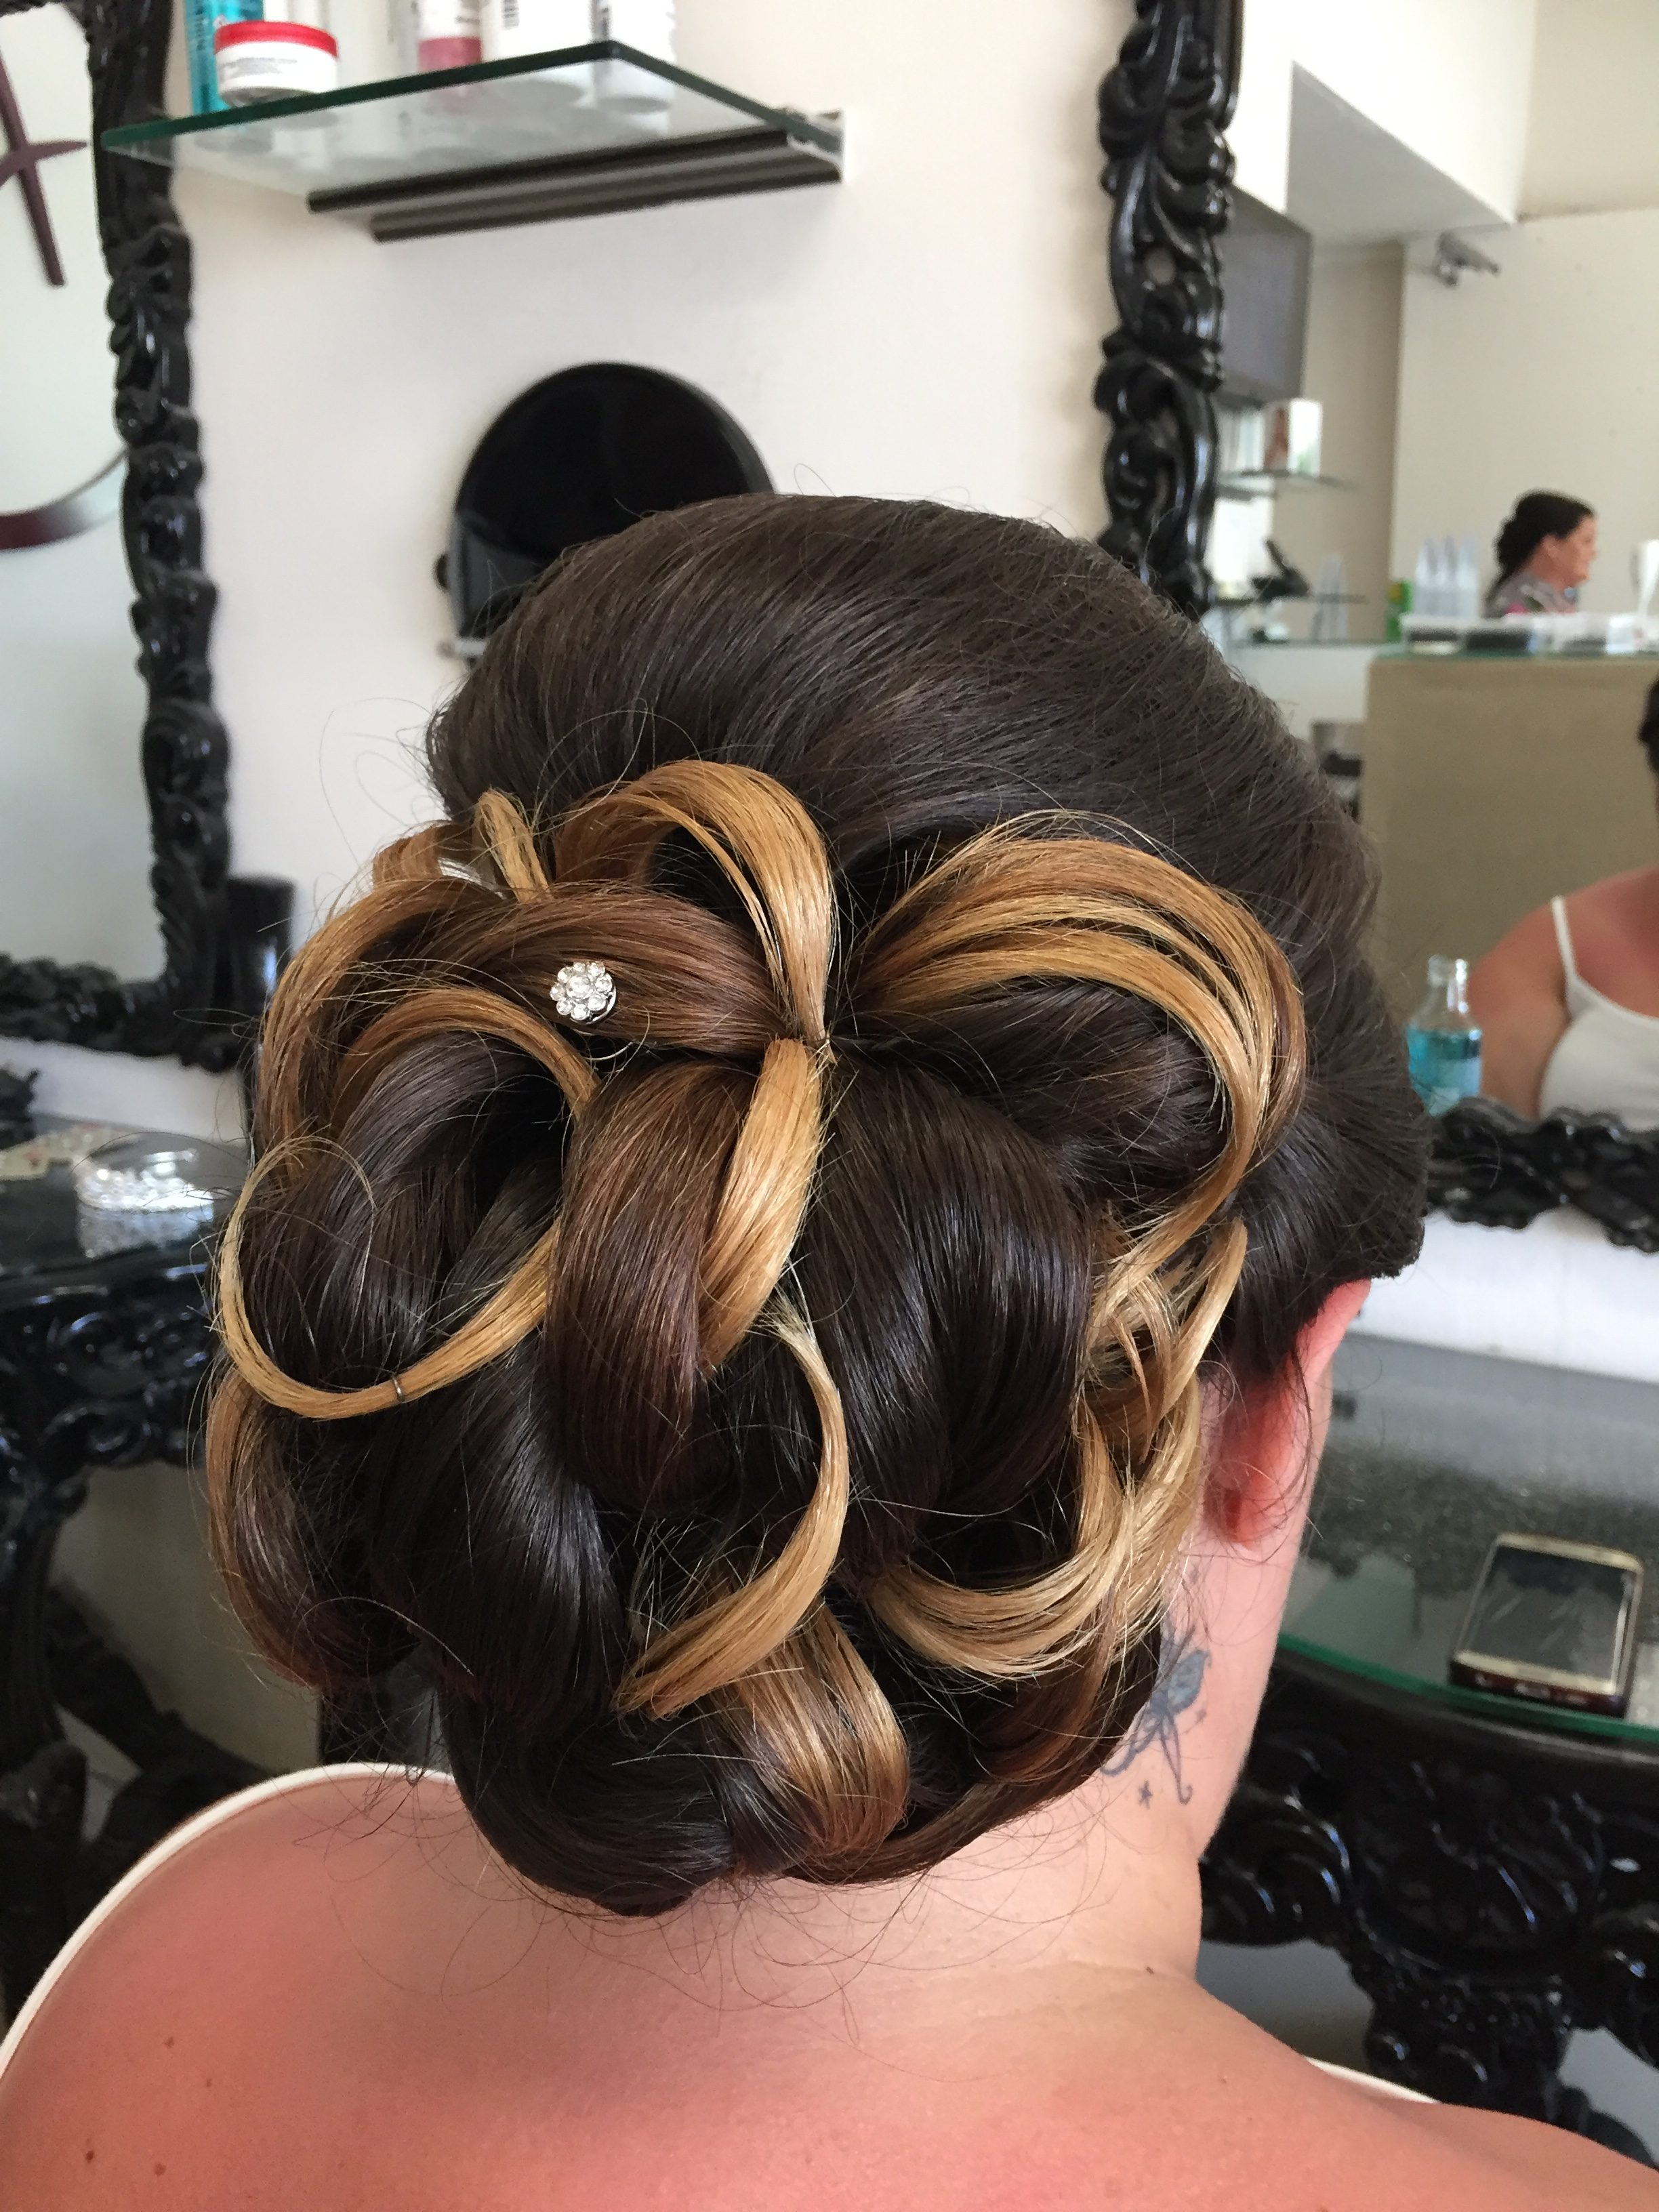 Bridesmaid Hair-up